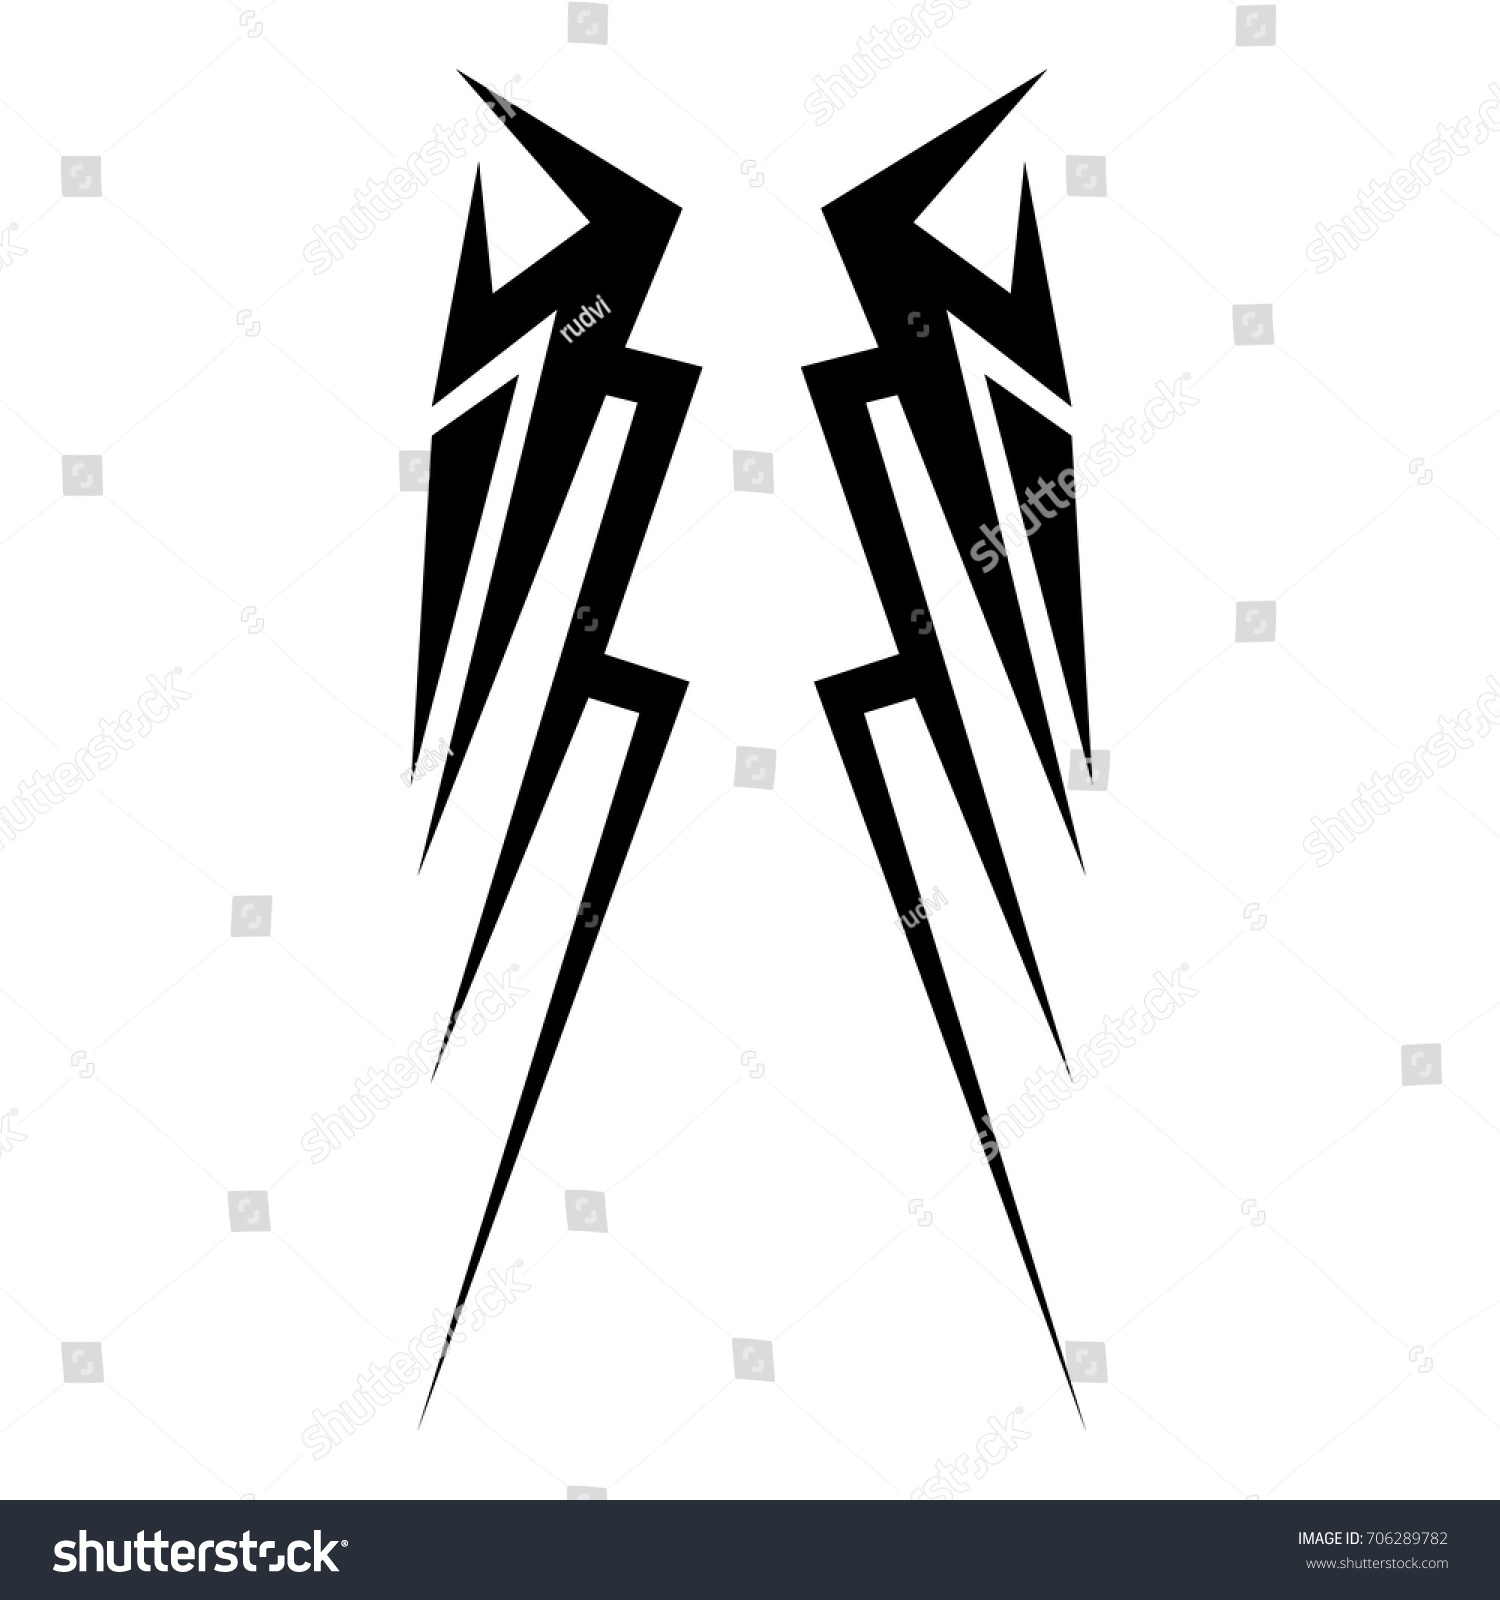 Tattoo Tribal Vector Design Simple Logo Stock-Vektorgrafik 706289782 ...